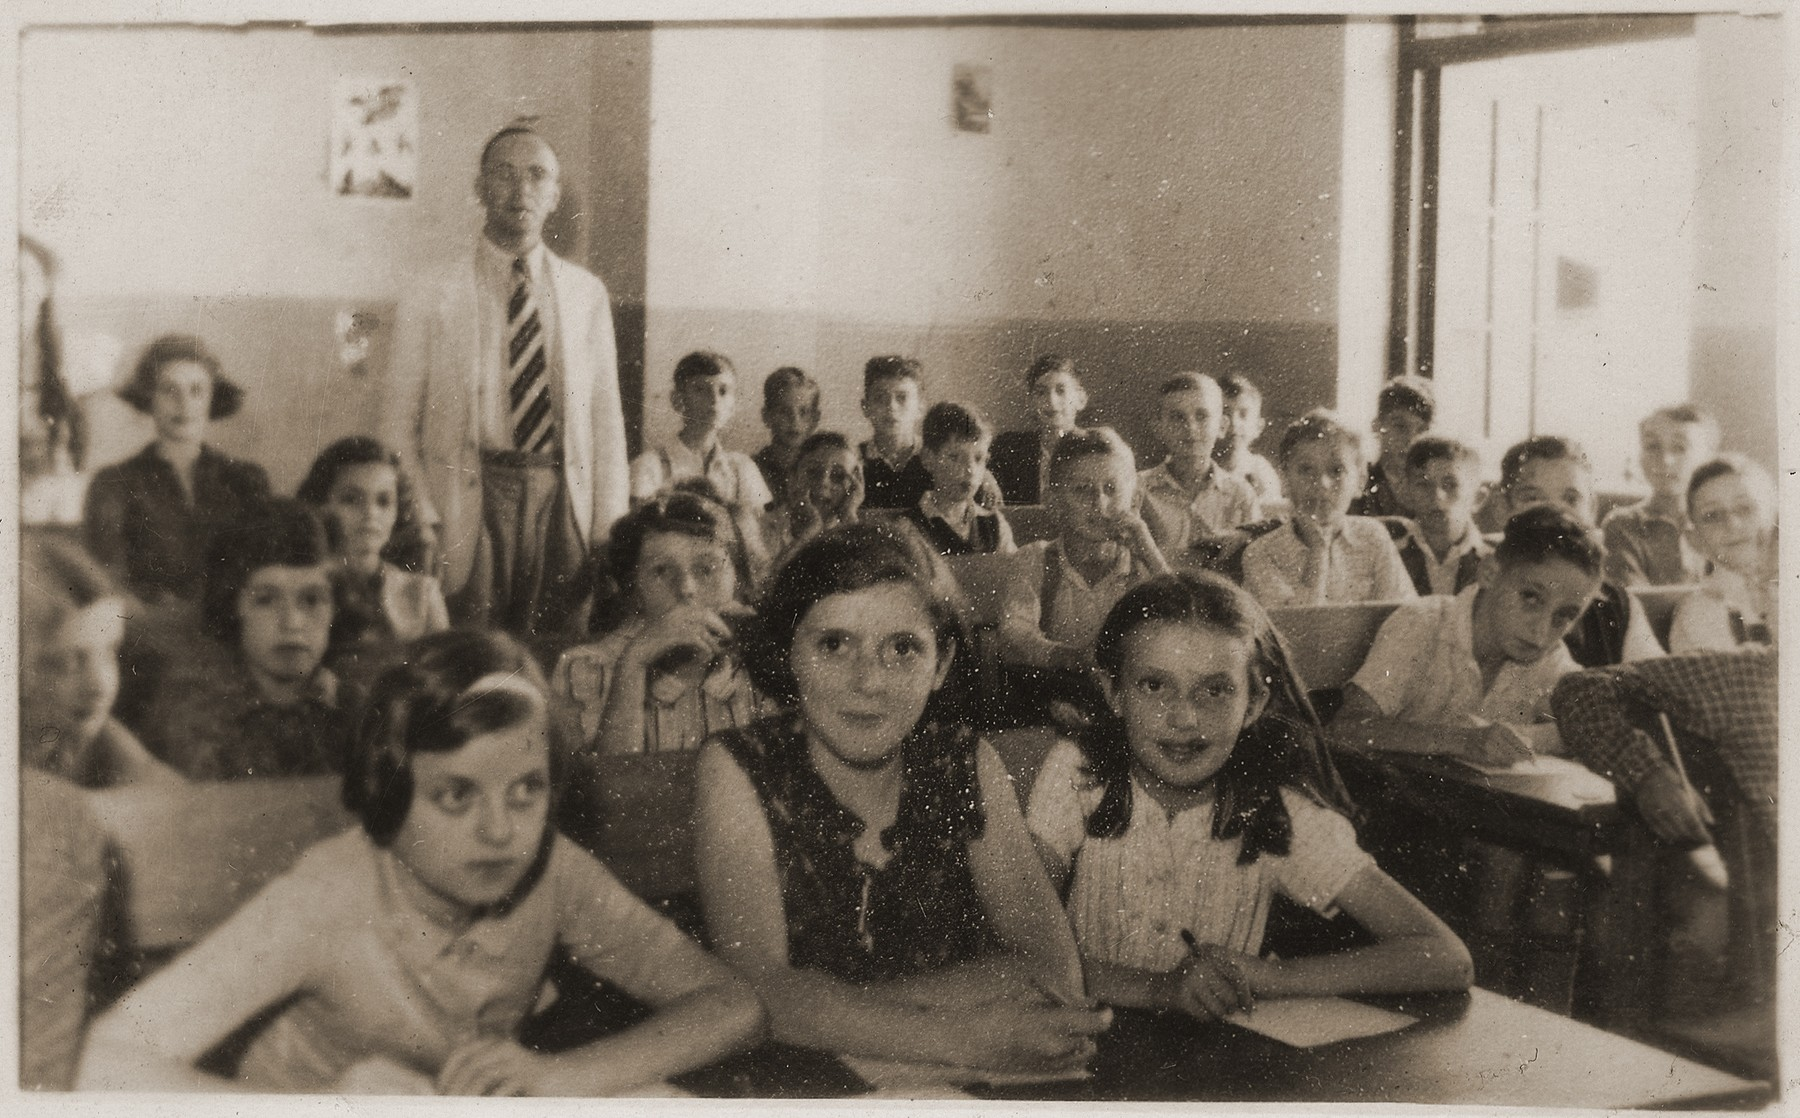 Students in the Hebrew language class at the Transition Upper school on Kinchow Road in Shanghai.    Hannelore Mansbacher is seated in the first row on the left. The teacher in the background is Albert Wessel.